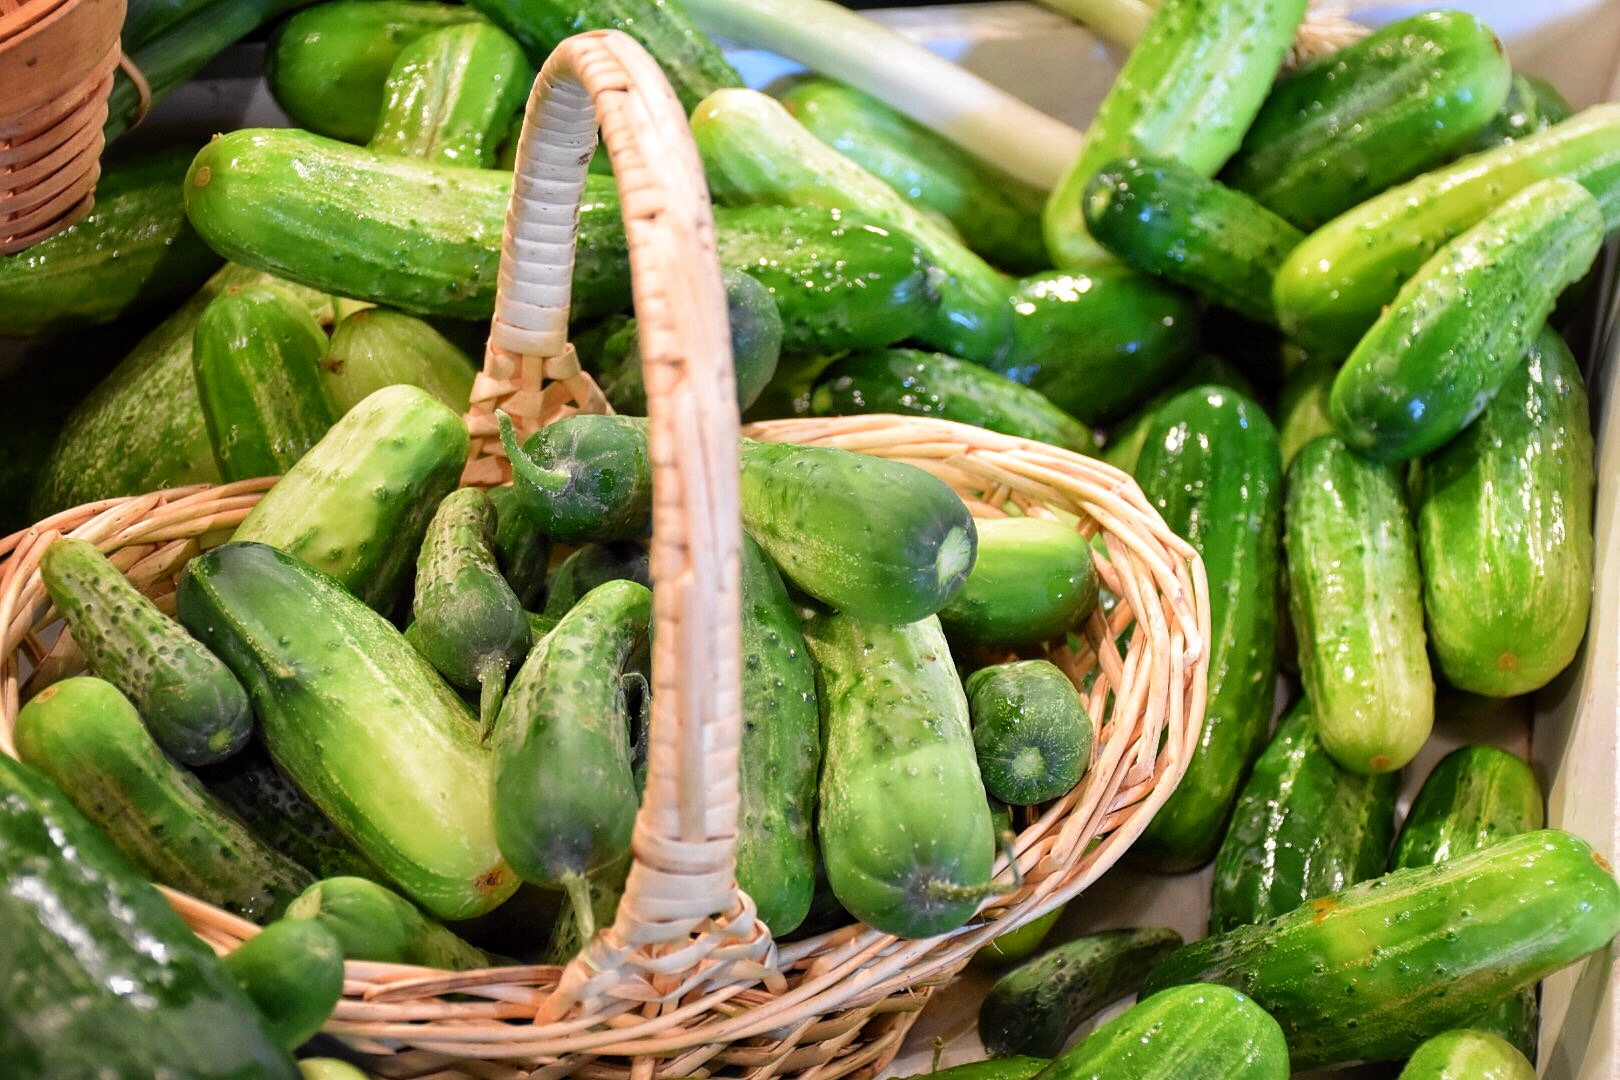 Beans & Greens Farm - crops cucumbers